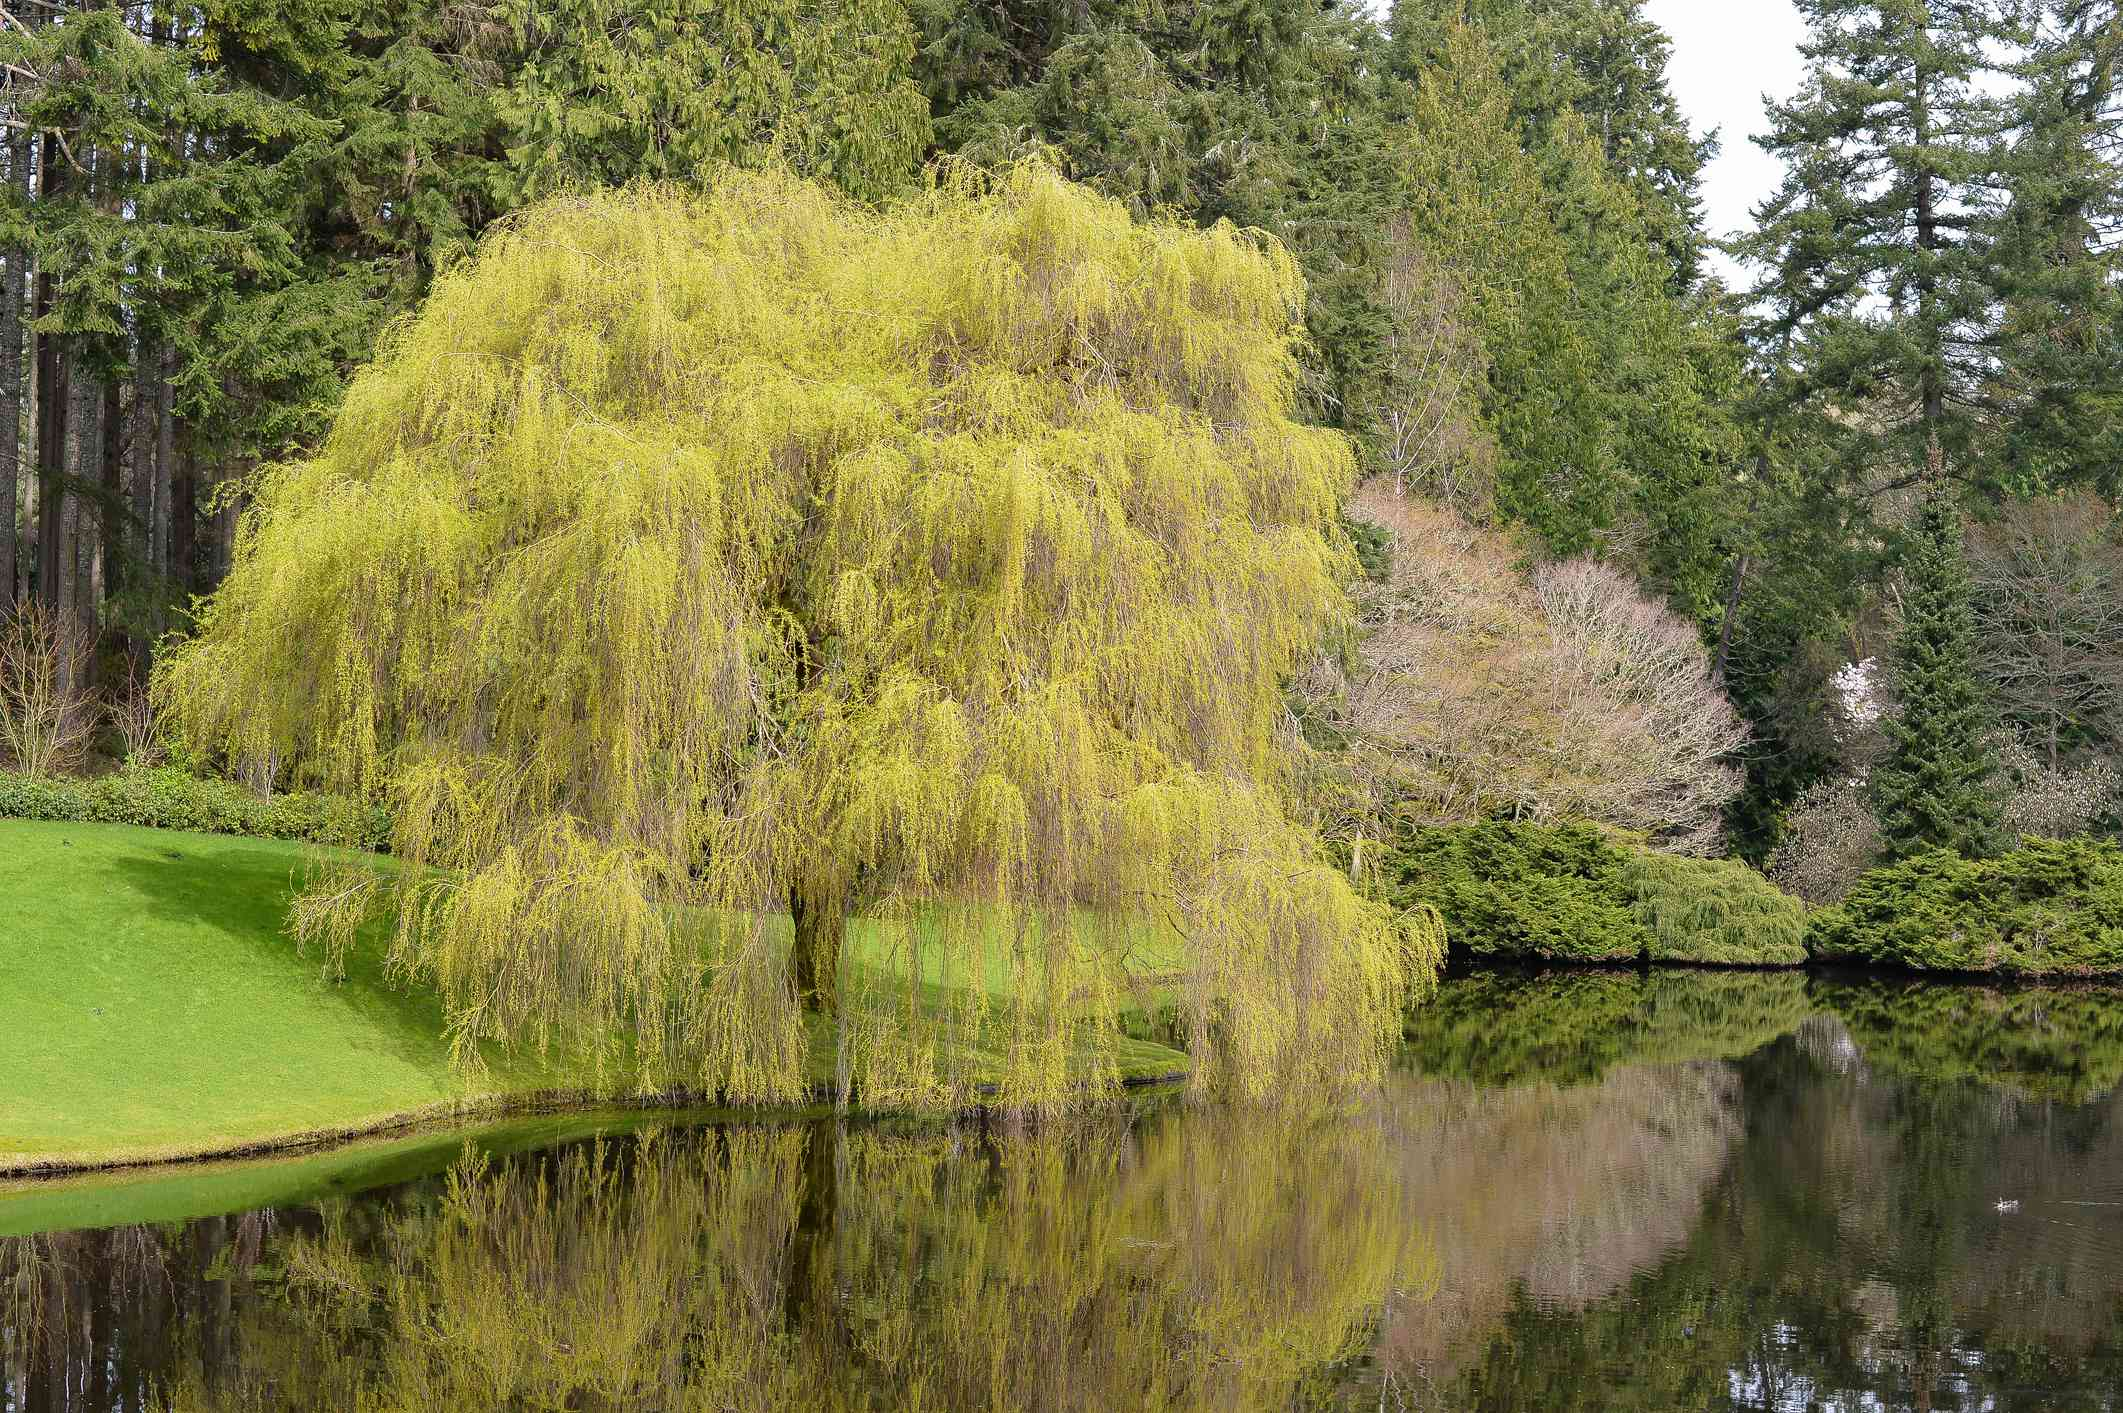 Weeping willow tree next to a lake